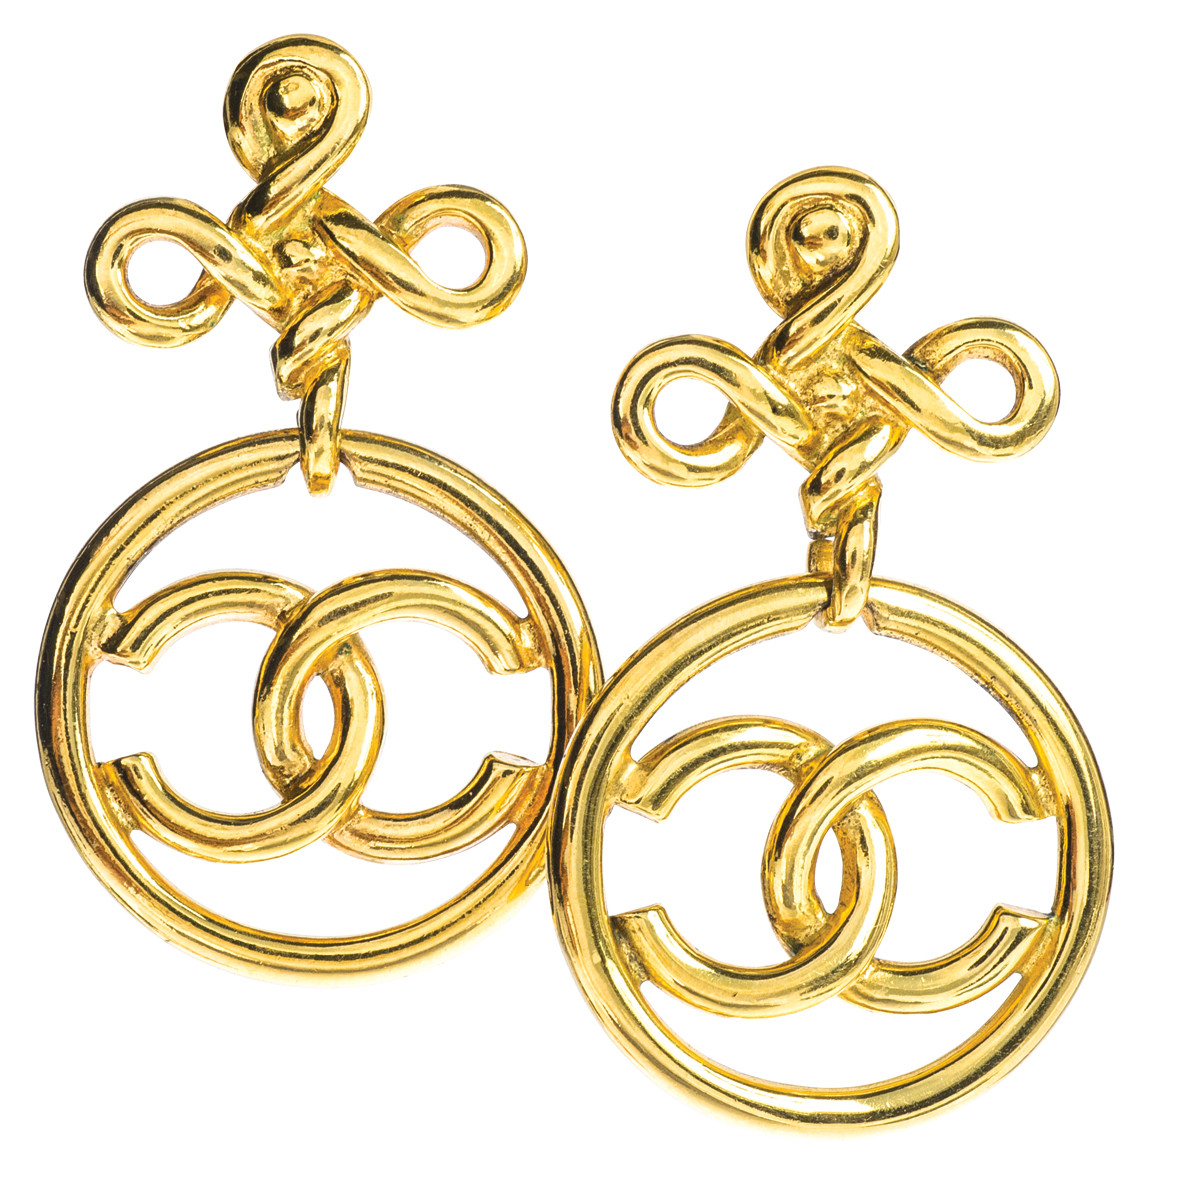 Vintage Chanel Logo Knot Earrings